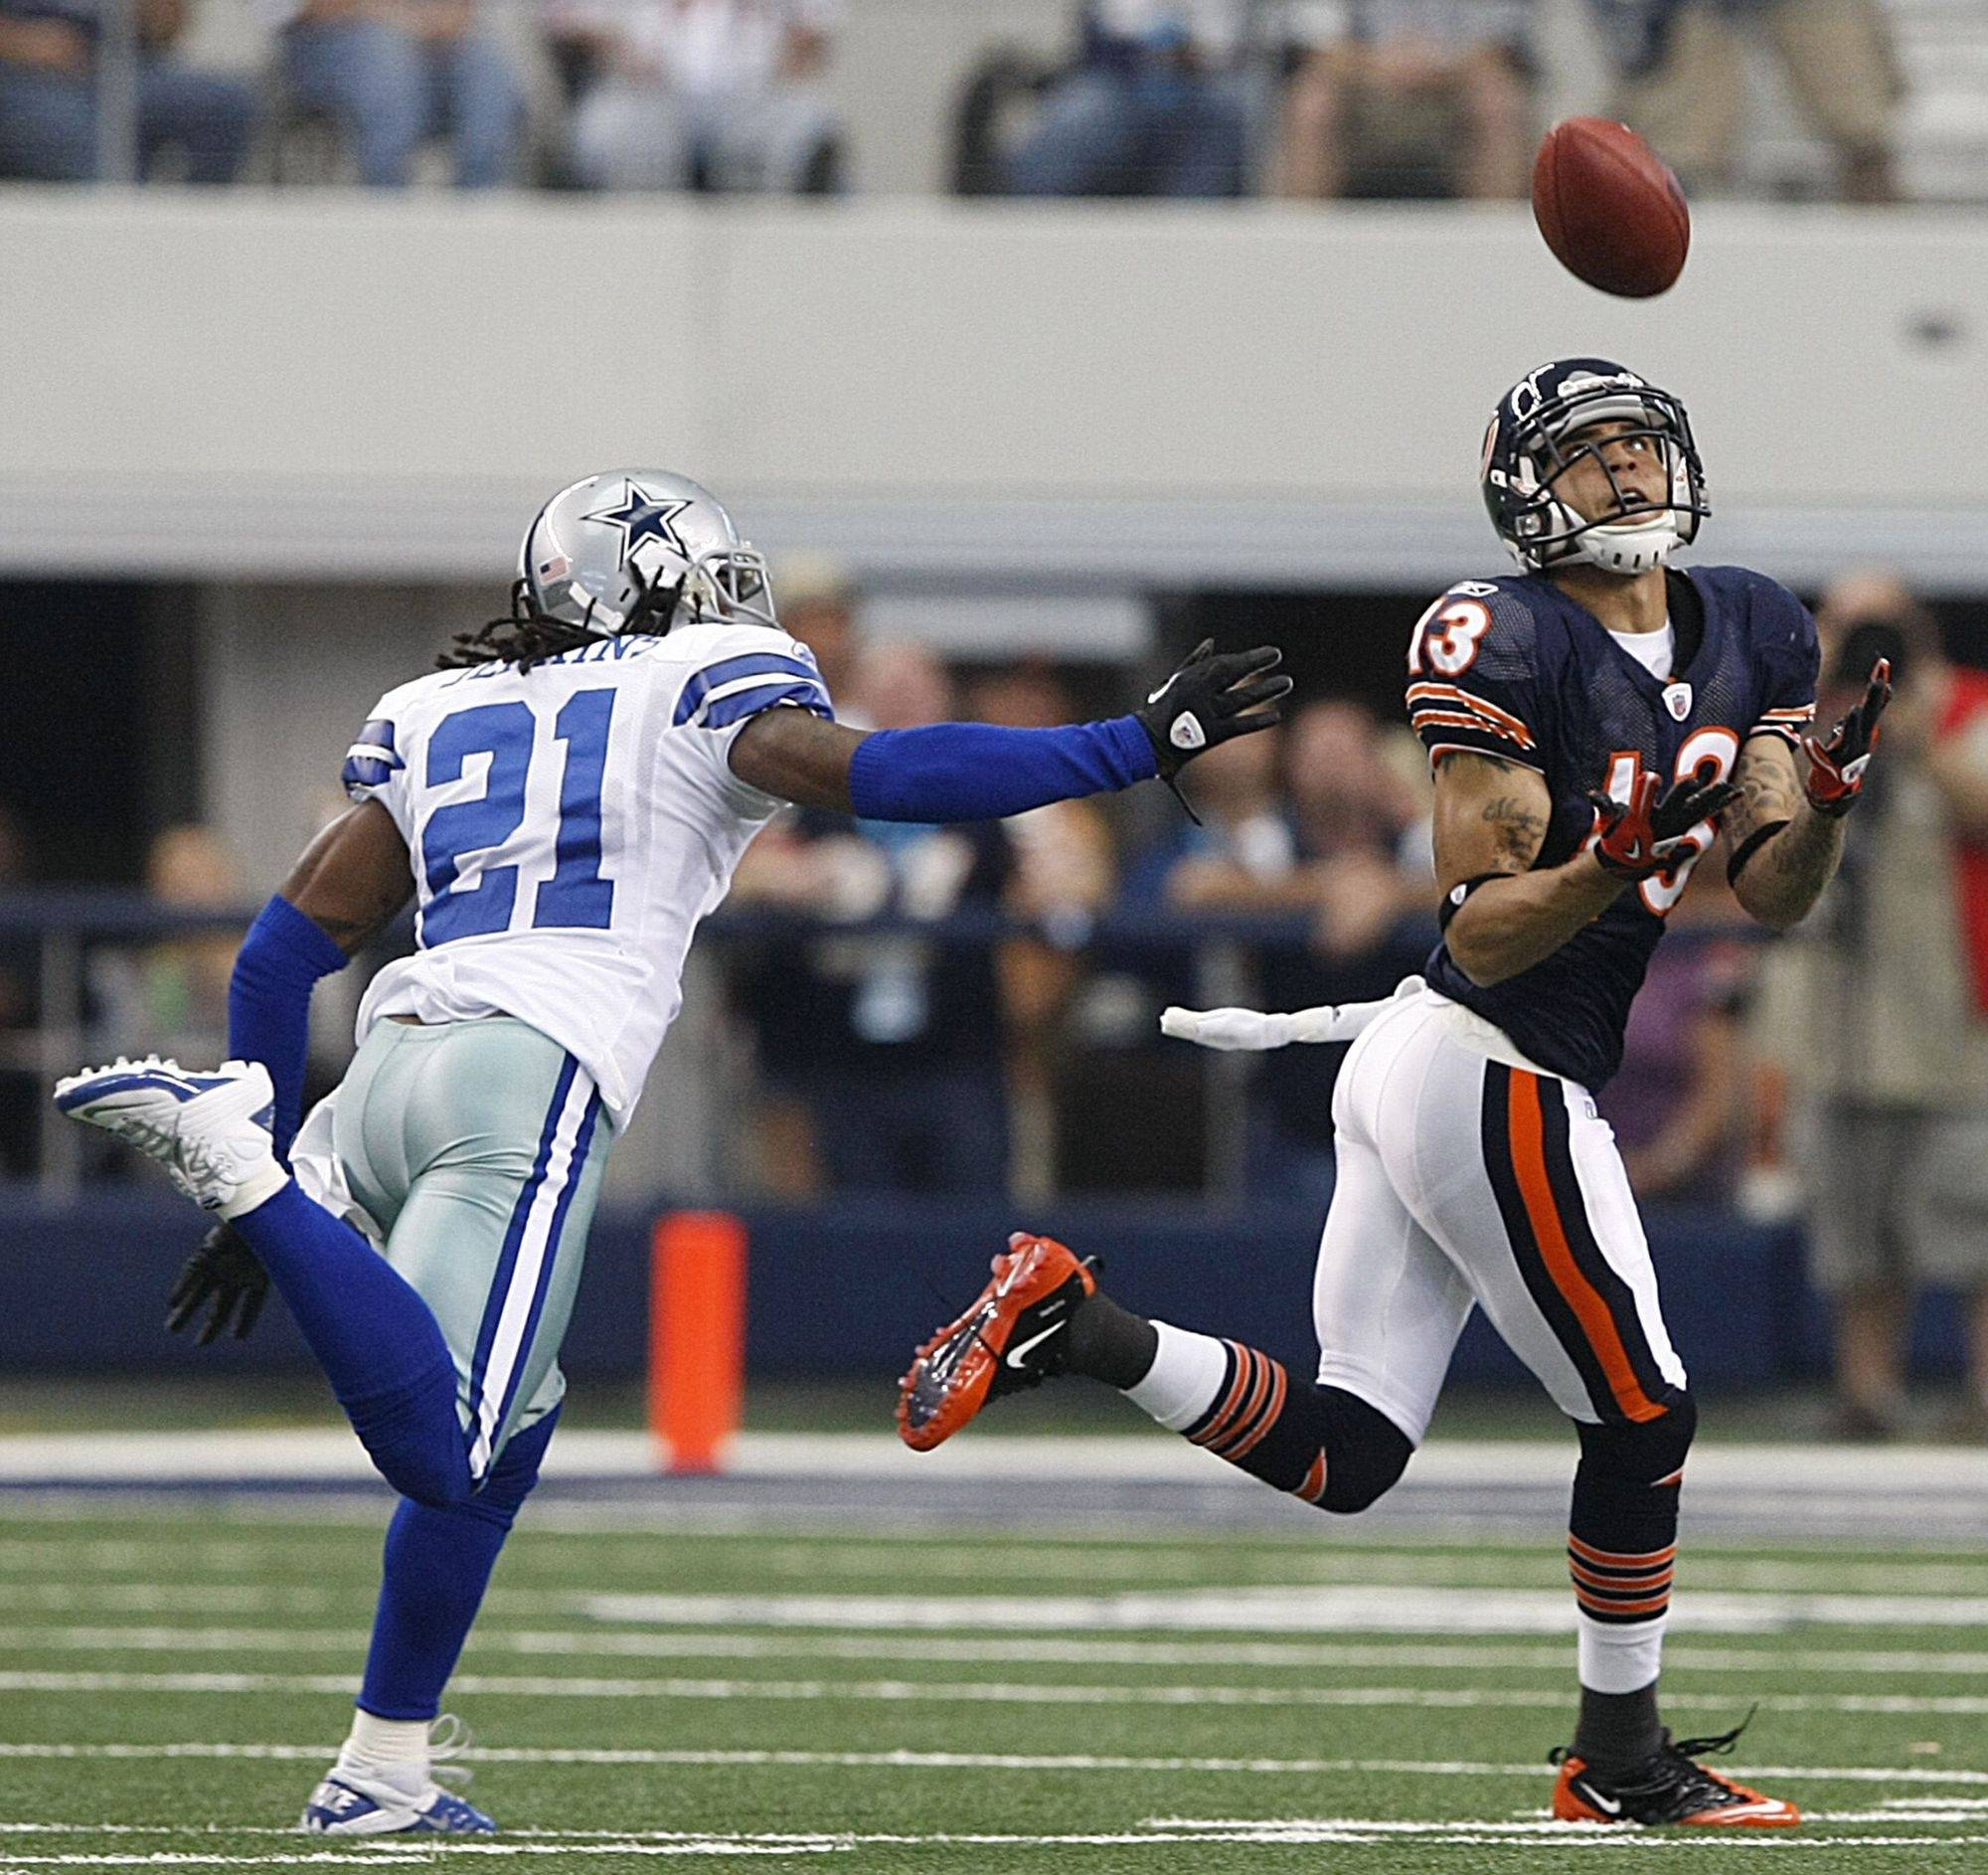 Chicago Bears wide receiver Johnny Knox (13) catches a long pass from Jay Cutler for a first down, next to Dallas Cowboys cornerback Mike Jenkins (21) during the first half.